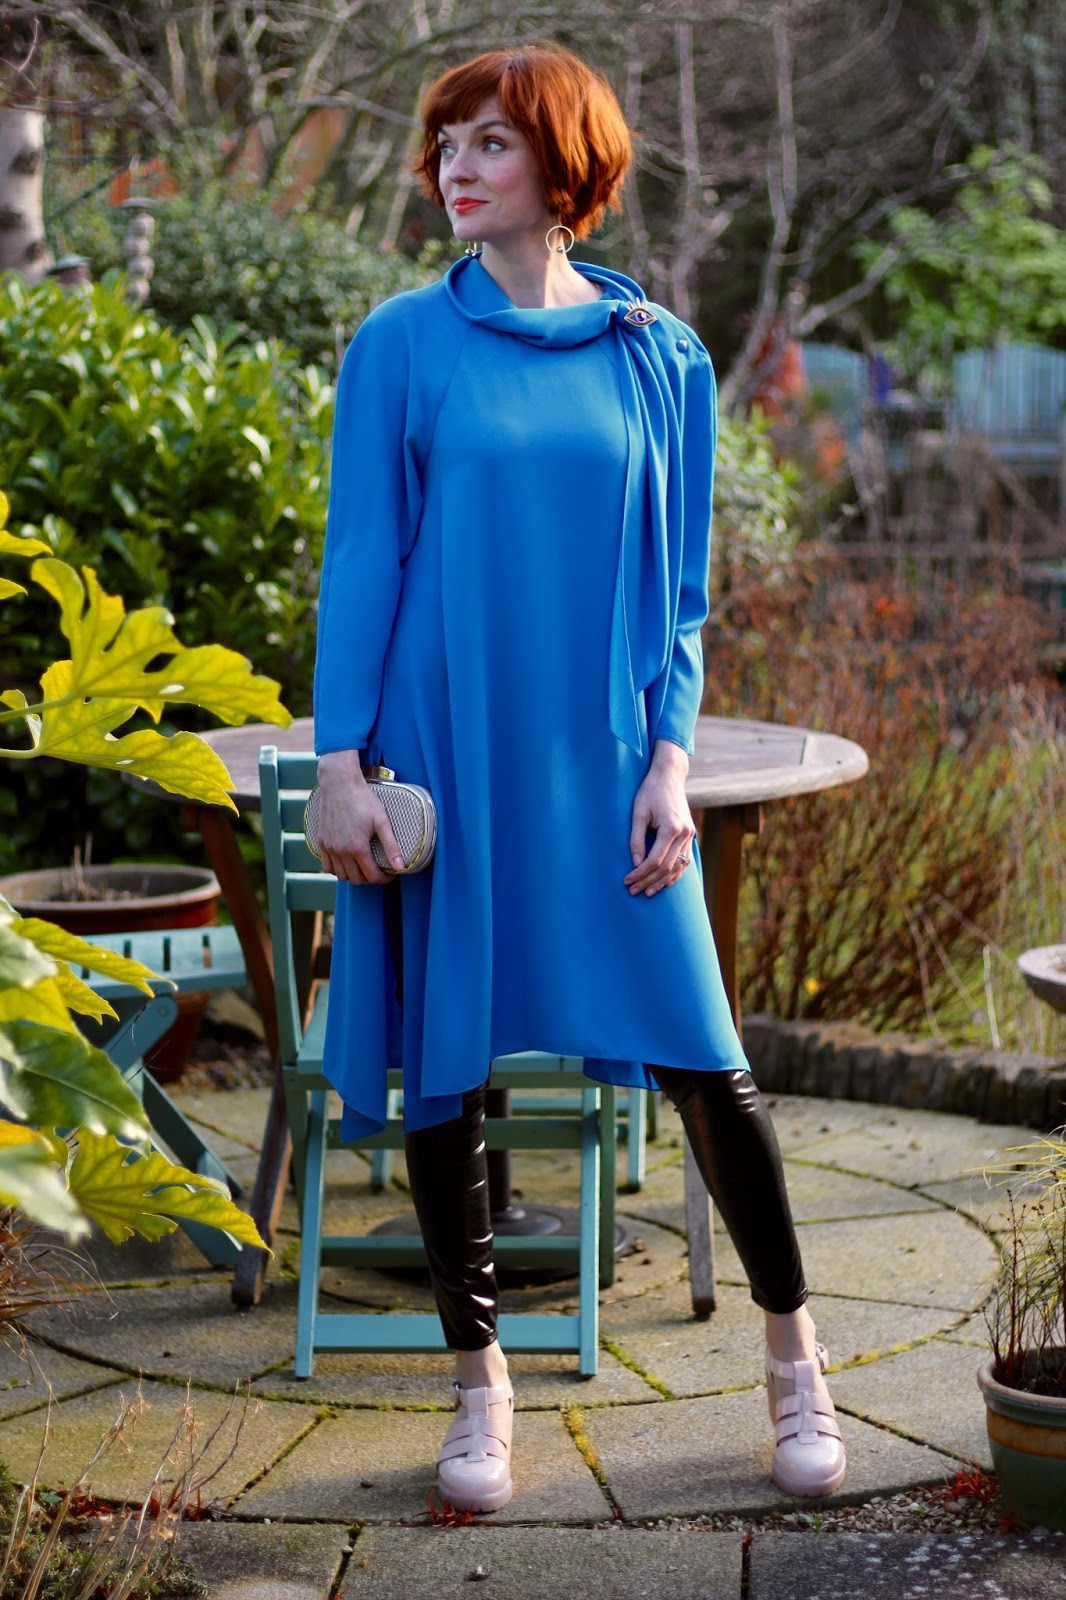 Bright Blue 1980's Vintage Dress with Vinyl Leggings & Chunky Vagabond Shoes!